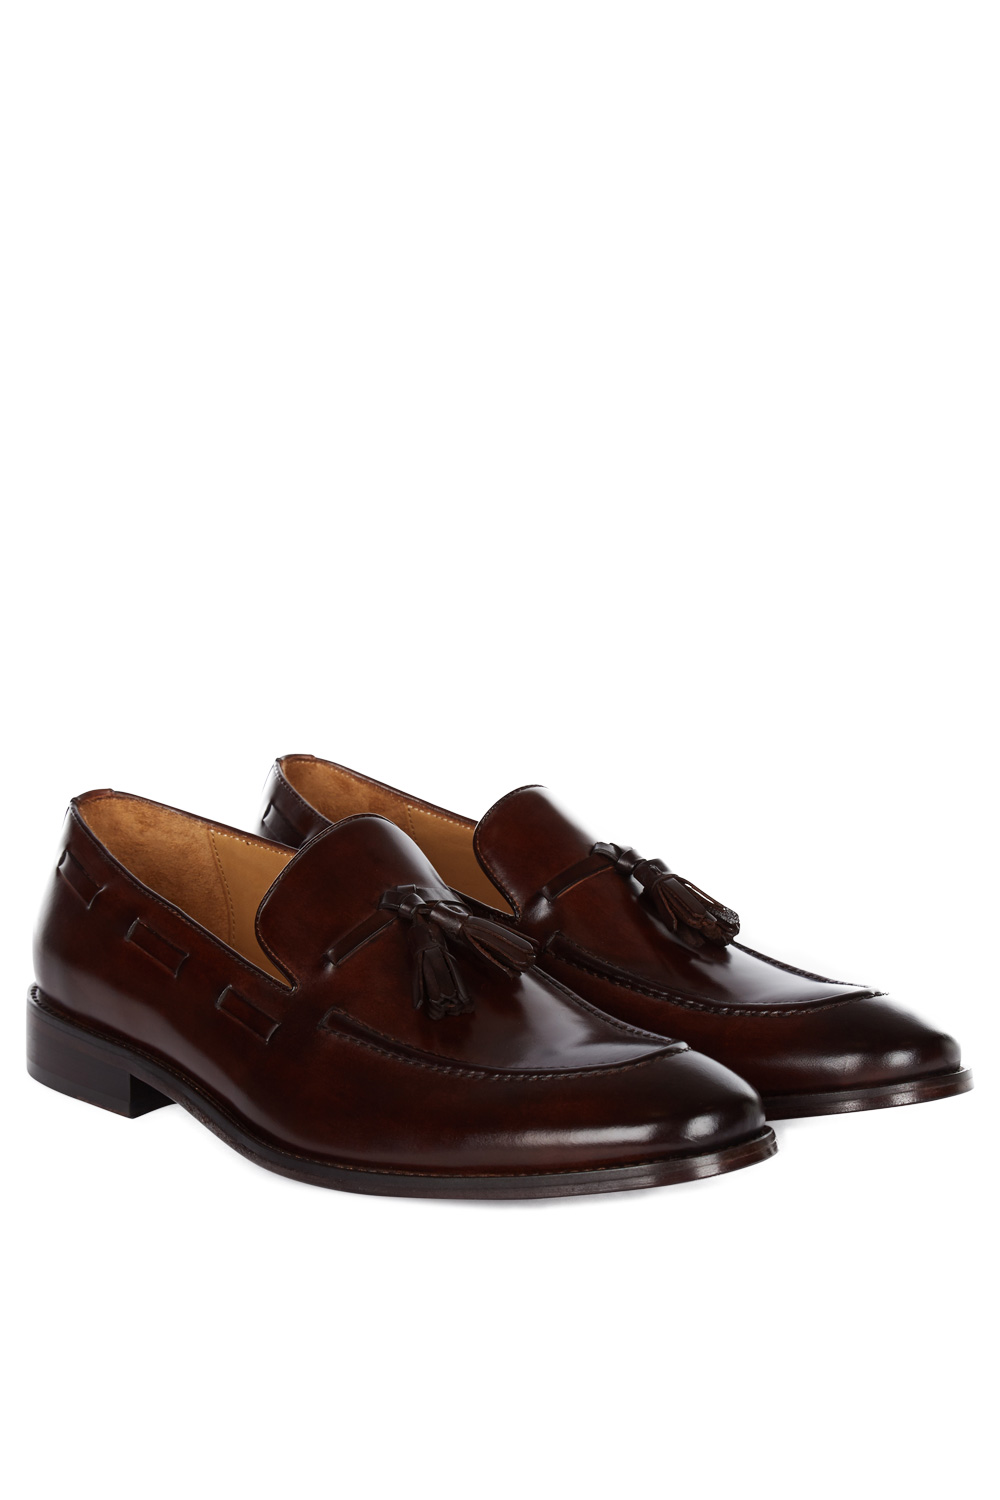 Hardy Amies Mens Formal Shoes Brown Tassel Leather Loafers Slip On Smart Casual | EBay